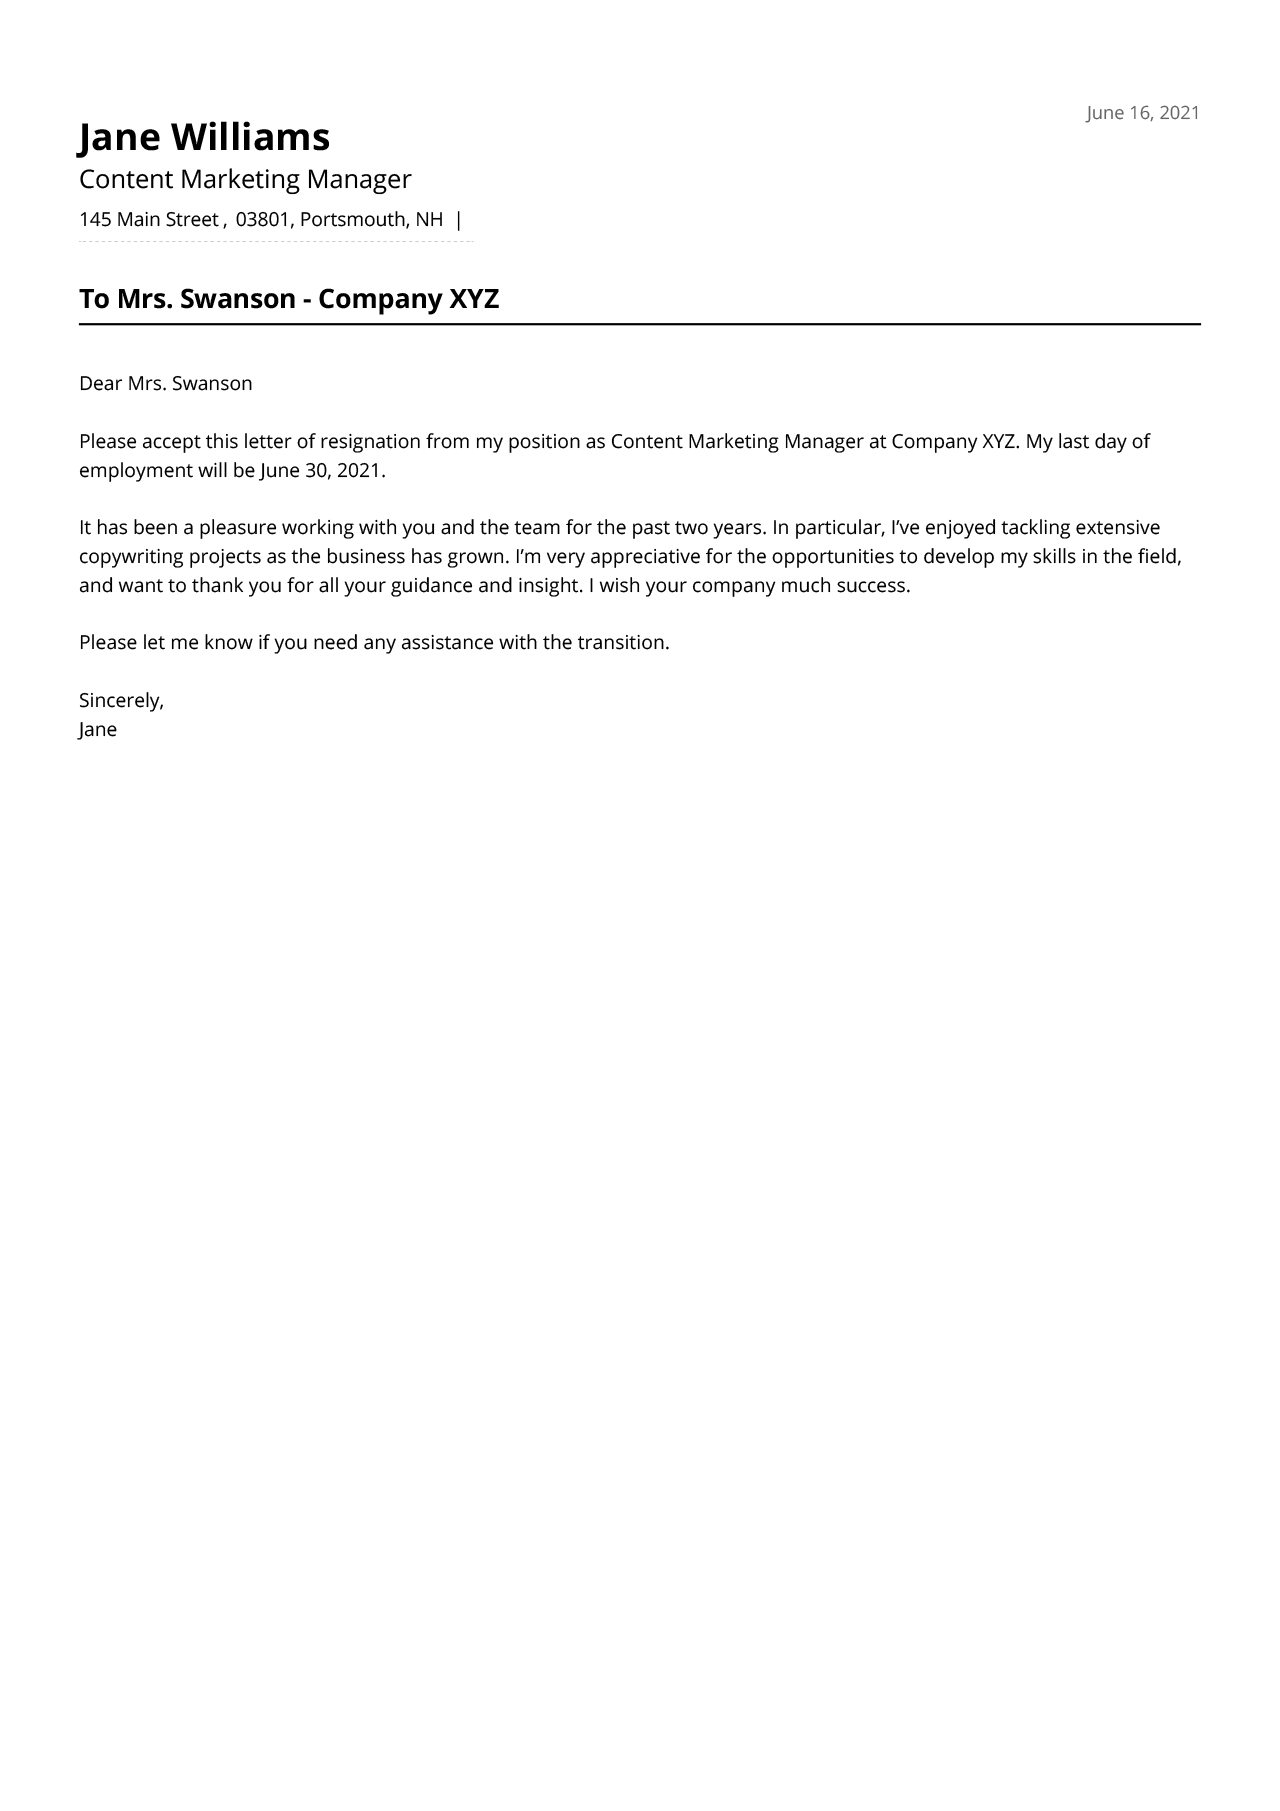 Short, simple, and polite resignation letter example from a content marketing manager